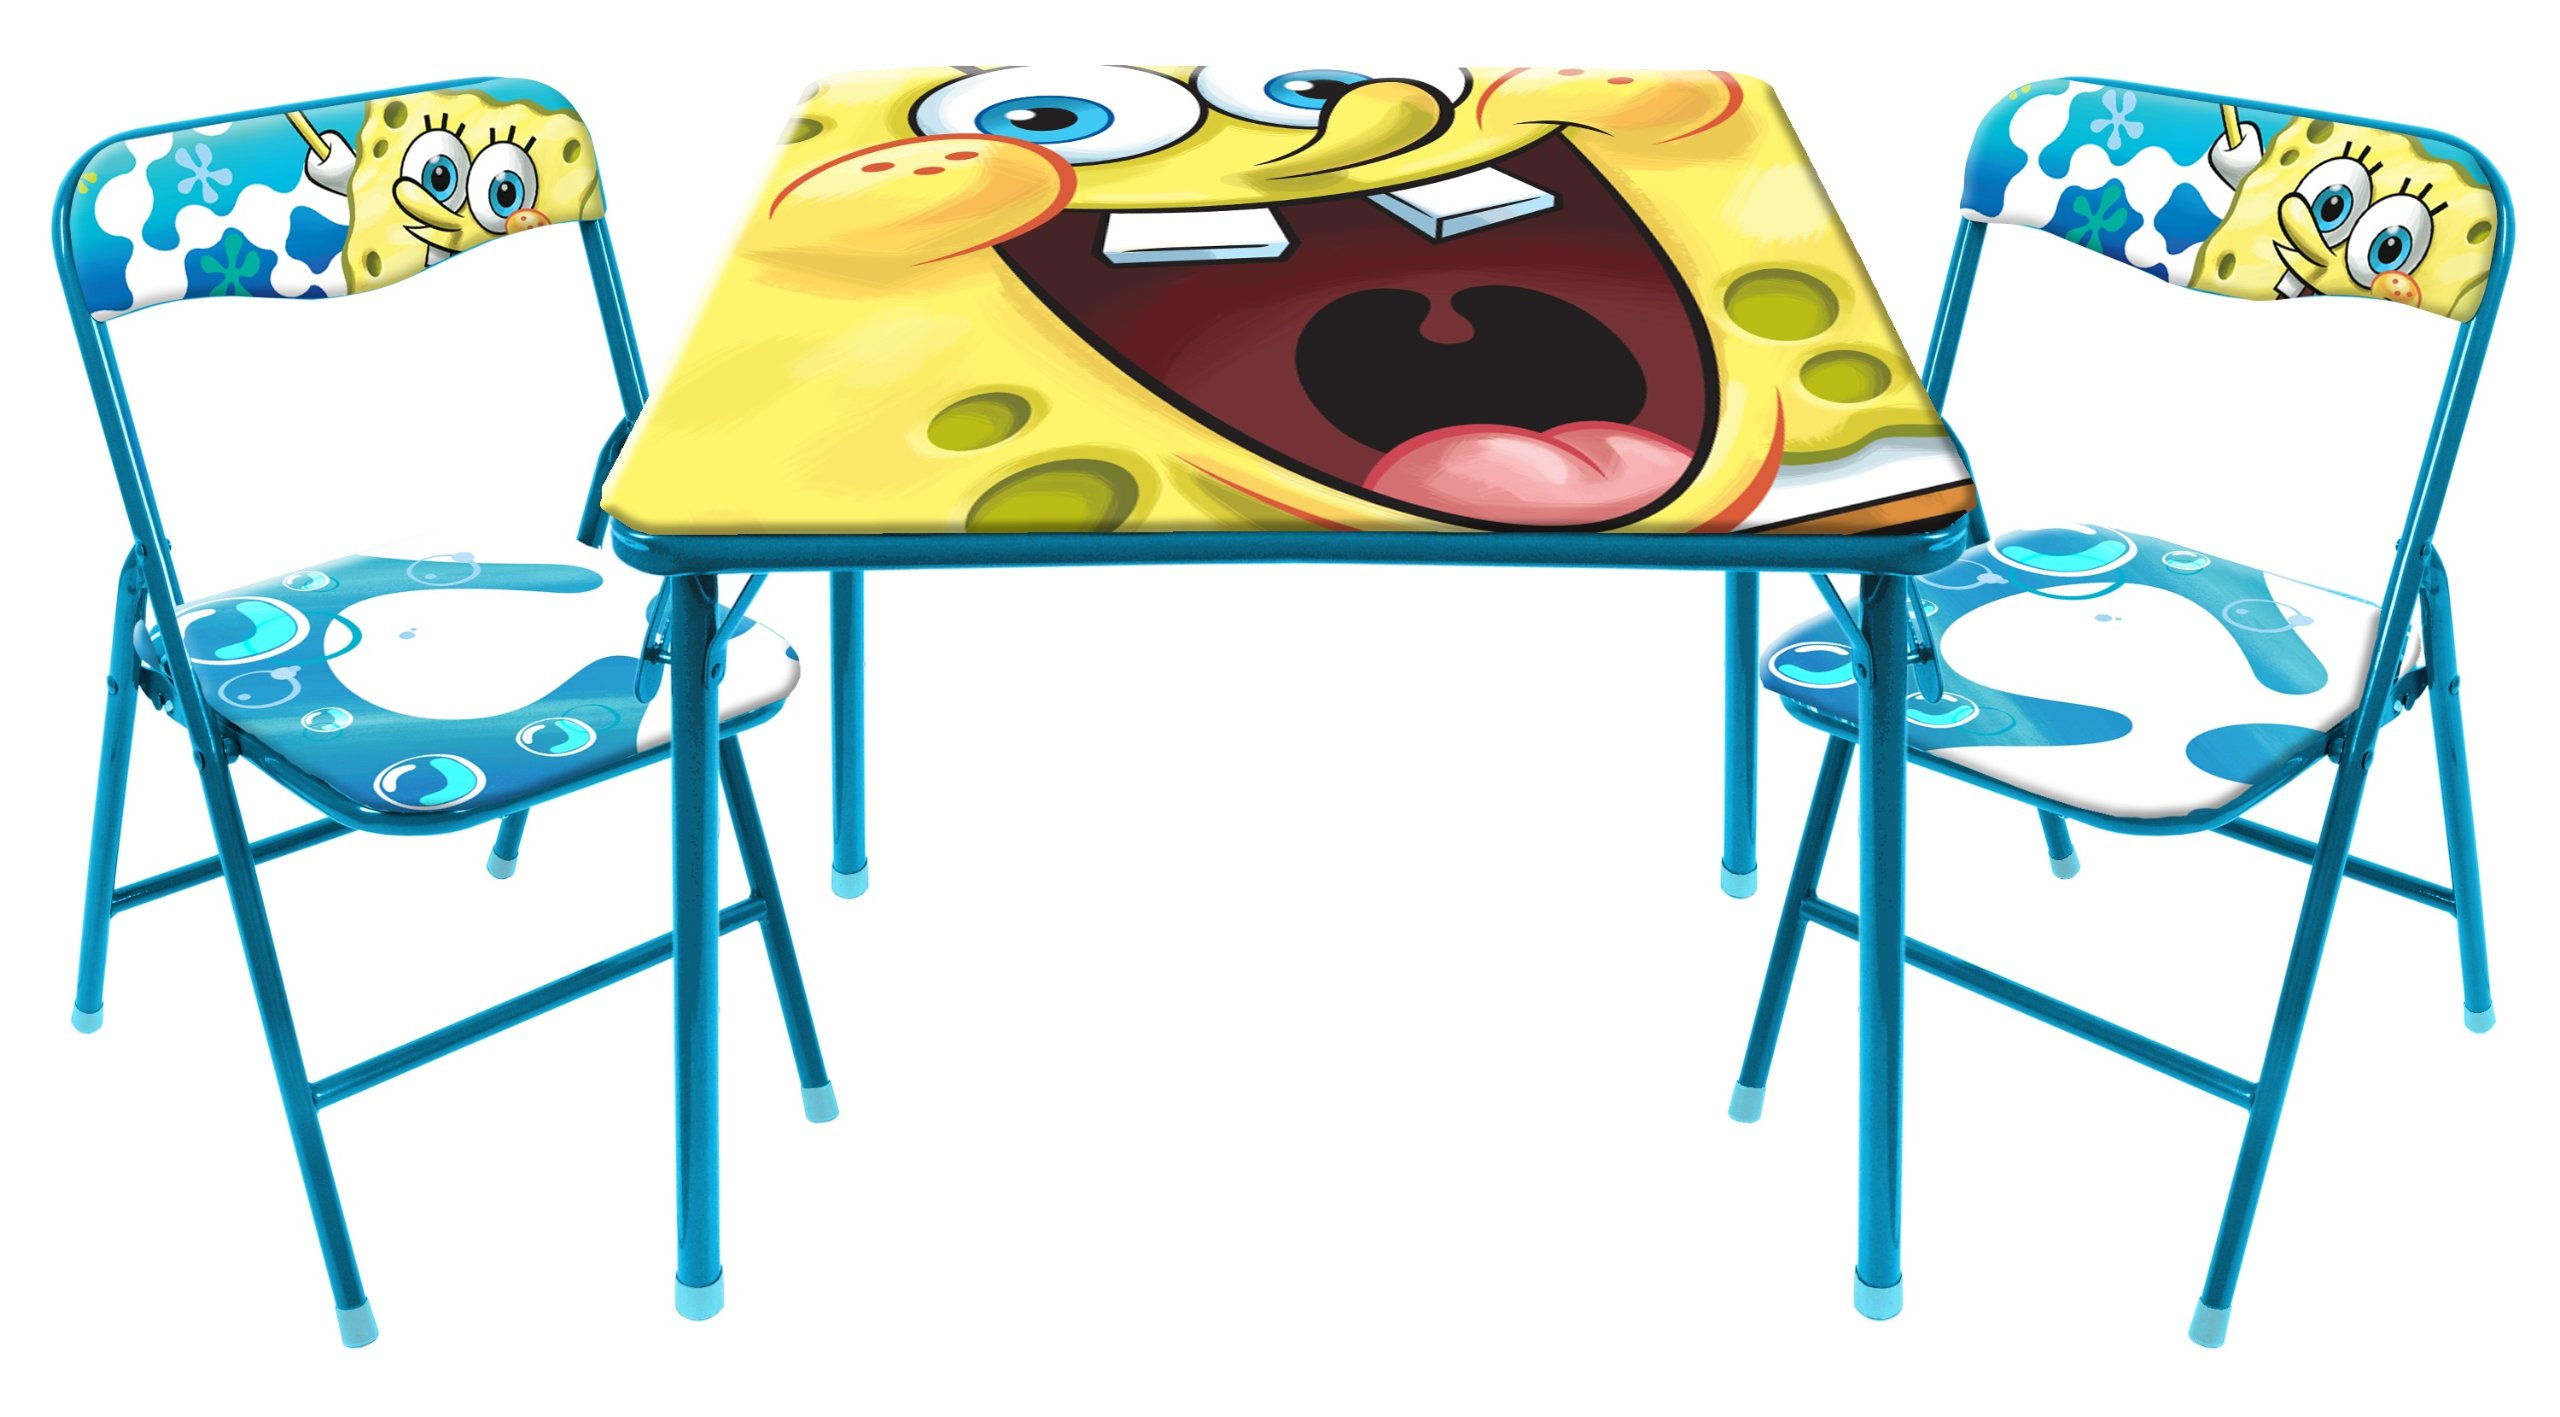 Nickelodeon SpongeBob Square Table and Chair Set by Nickelodeon